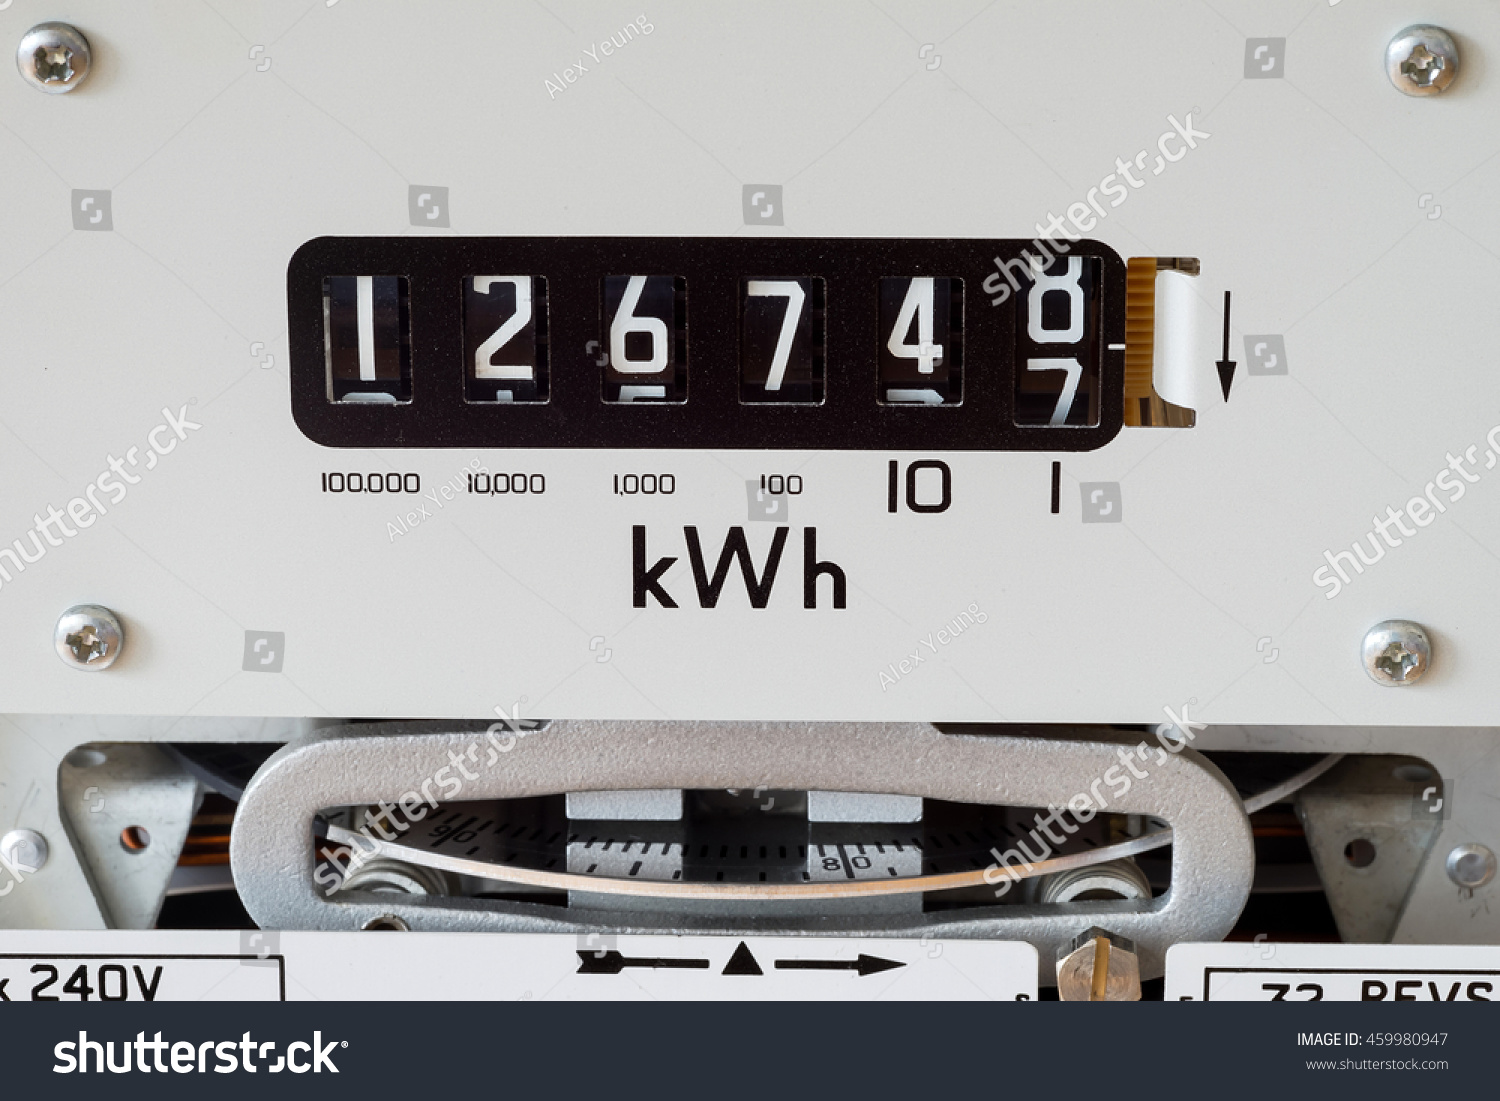 Electricity Meter Showing Kilowatt Hour Symbol Stock Photo (Safe to ...